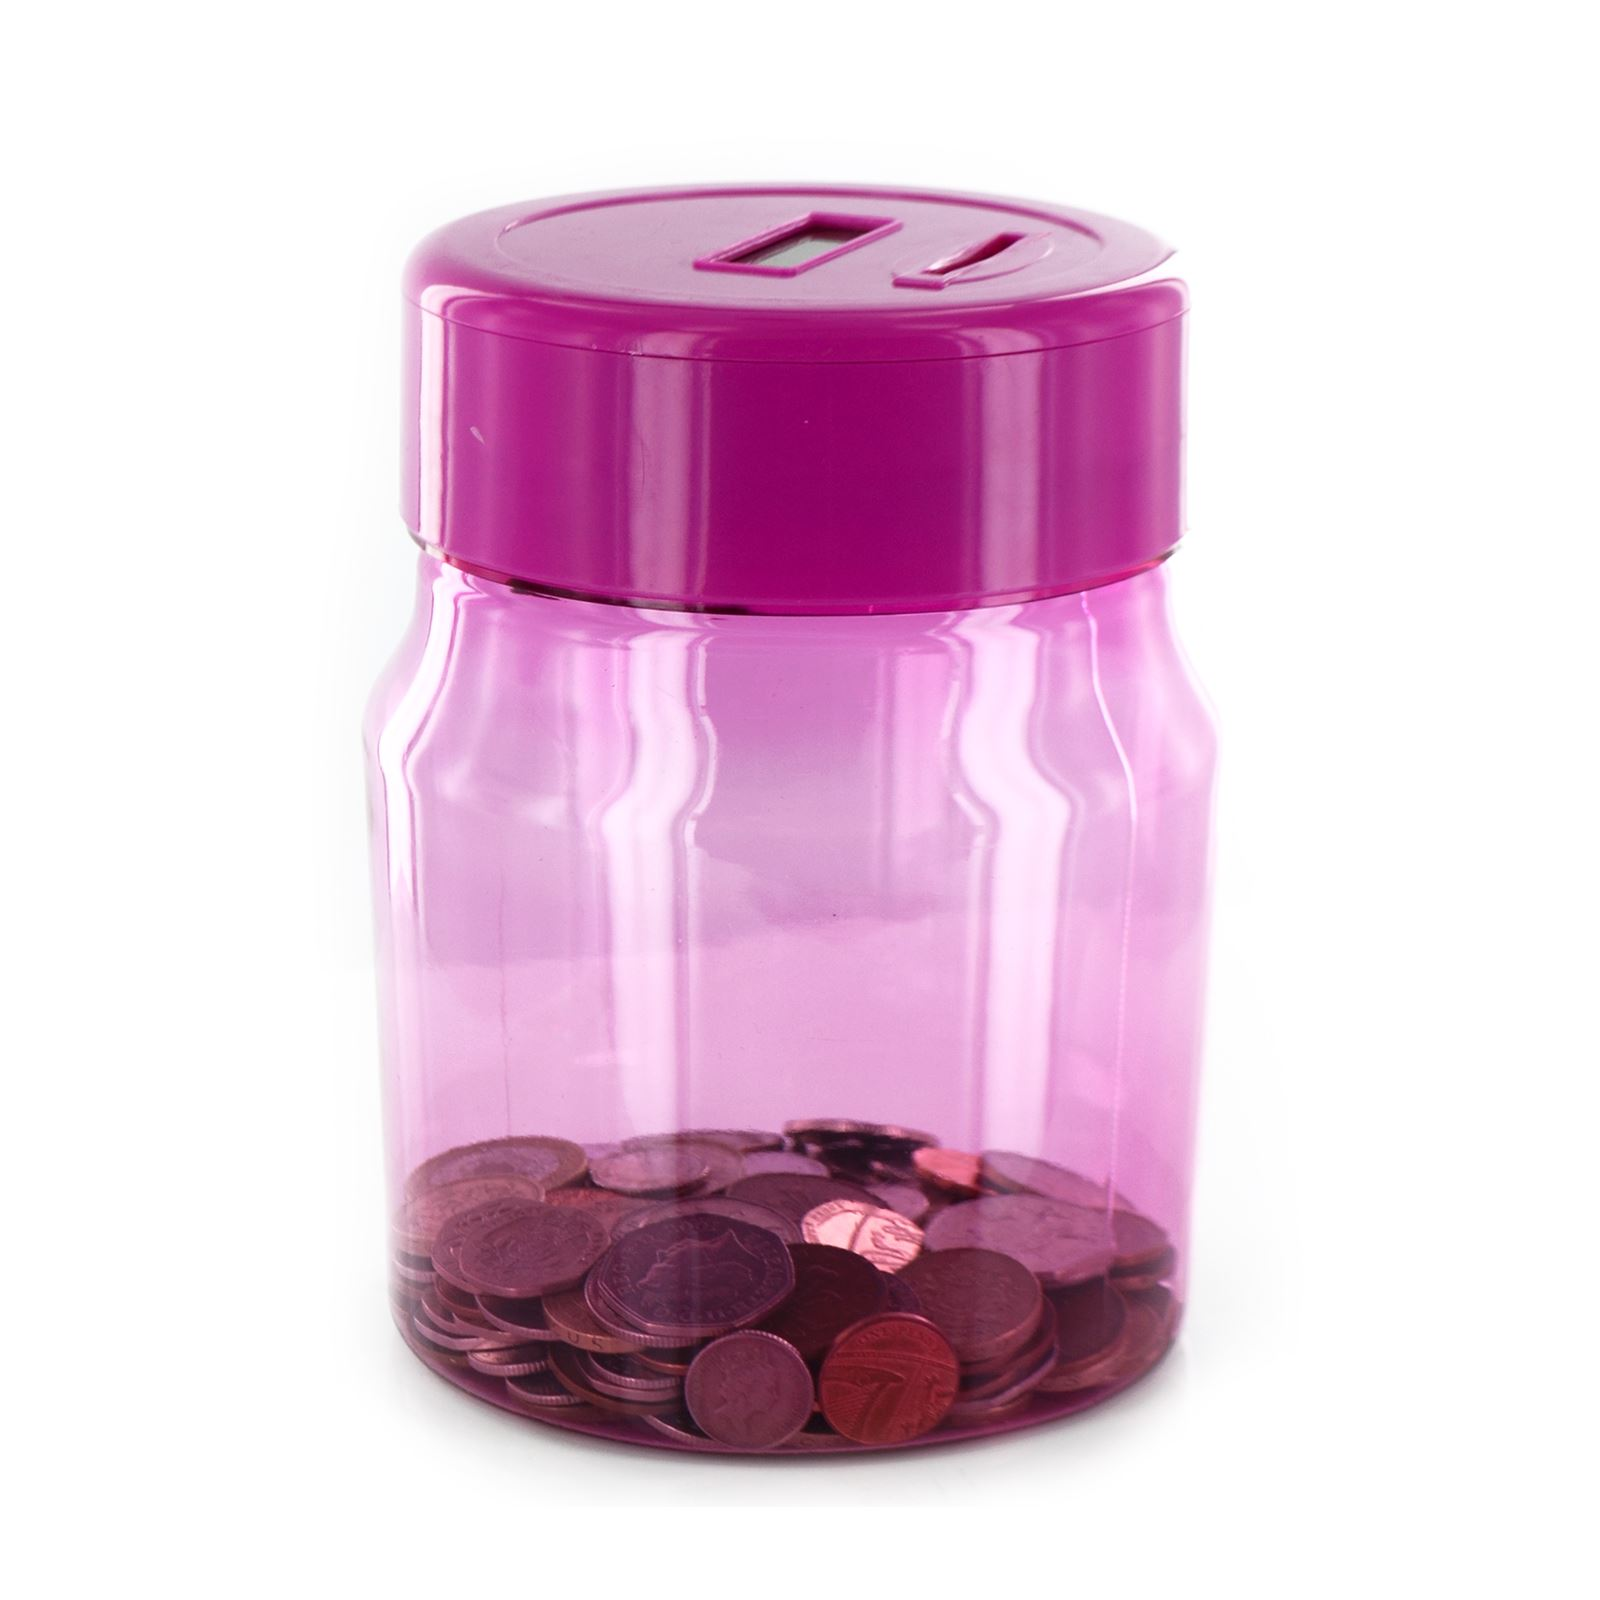 Counting jar images reverse search - Counting piggy bank ...